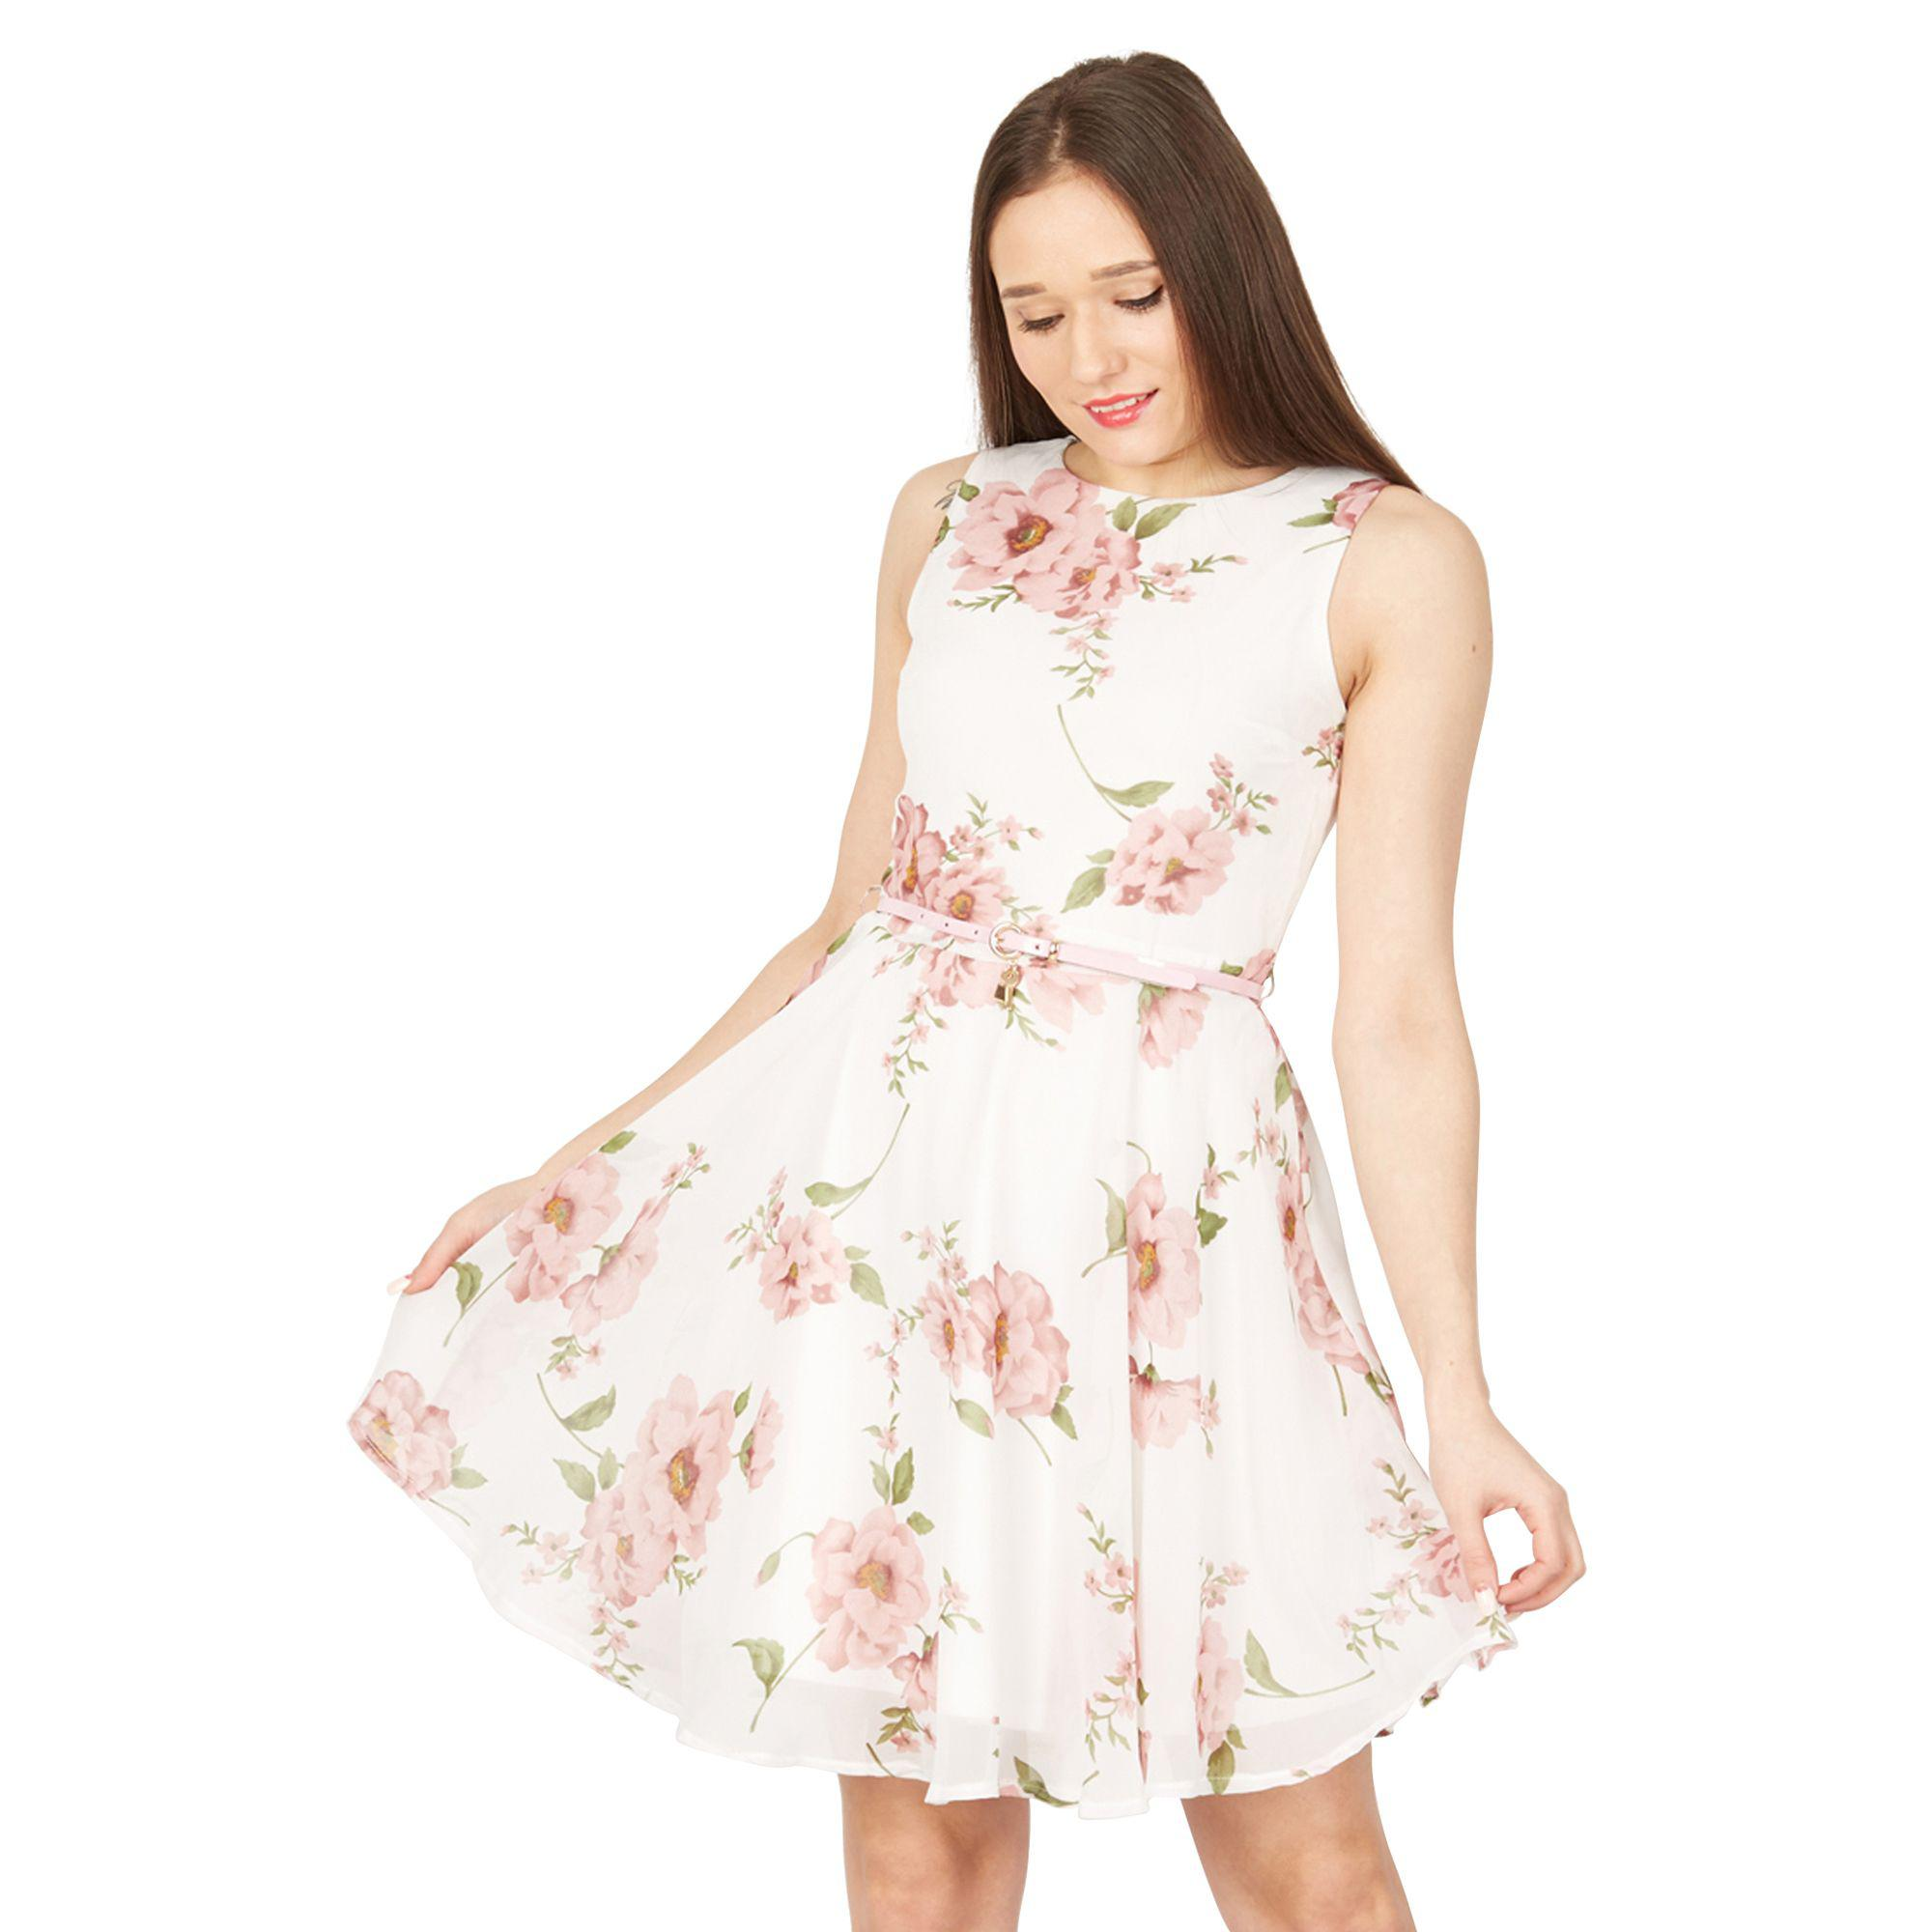 e339f33ac06 Izabel London Pink Floral Printed Waisted Dress in Pink - Lyst